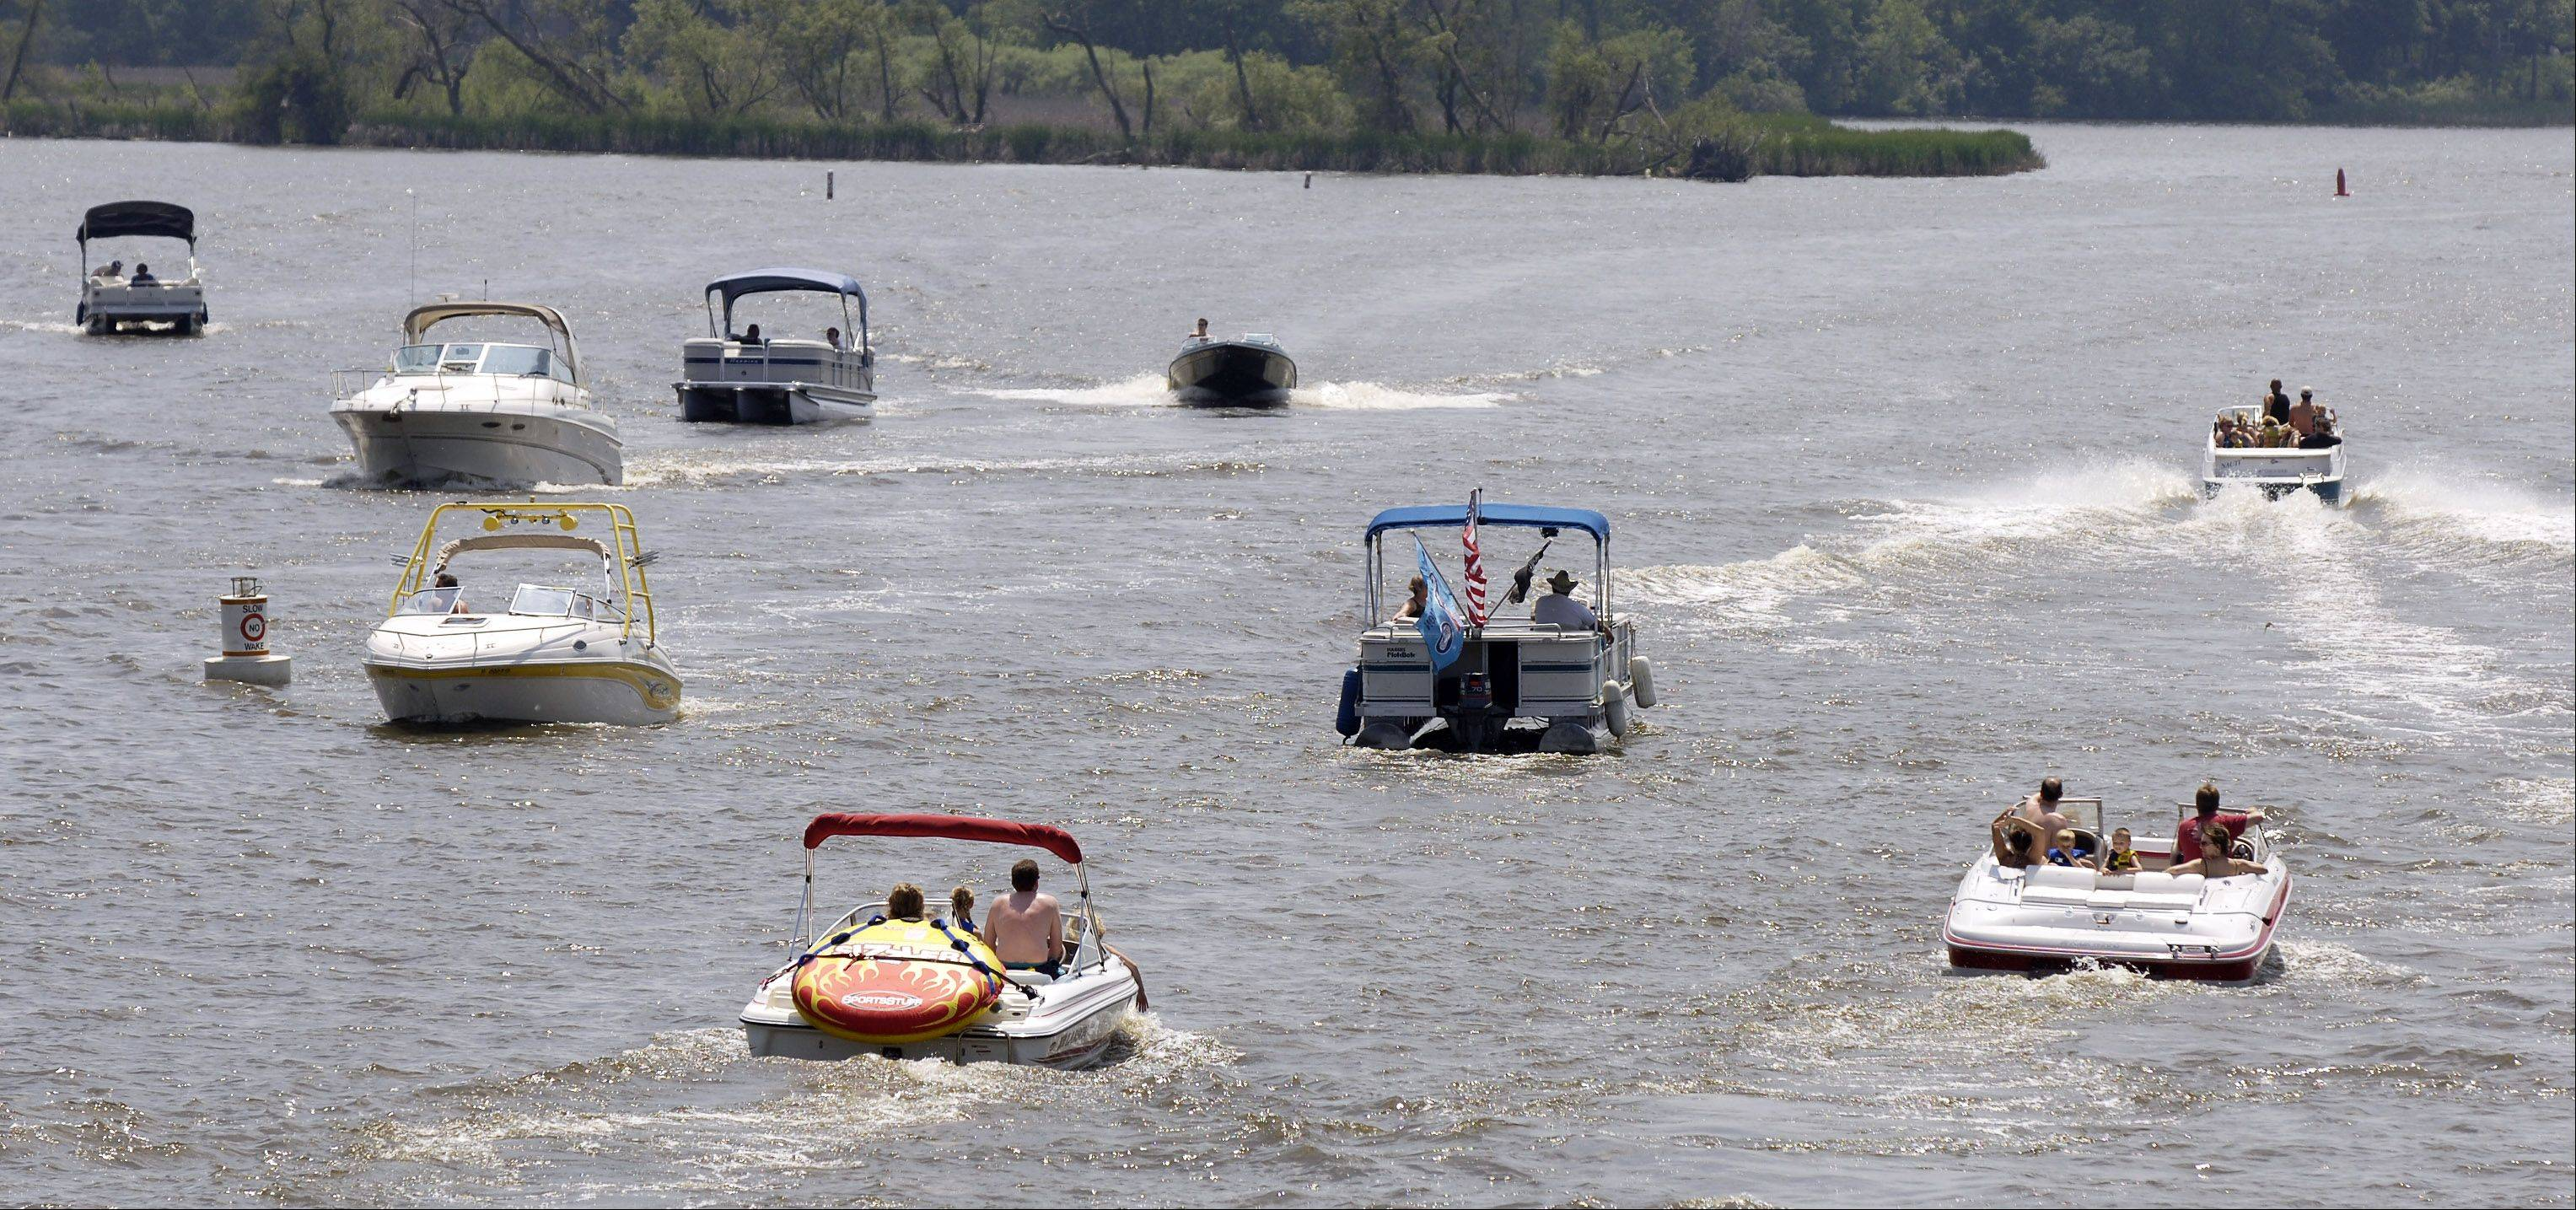 Editorial: Consider boat-safety law, but listen to boaters, too